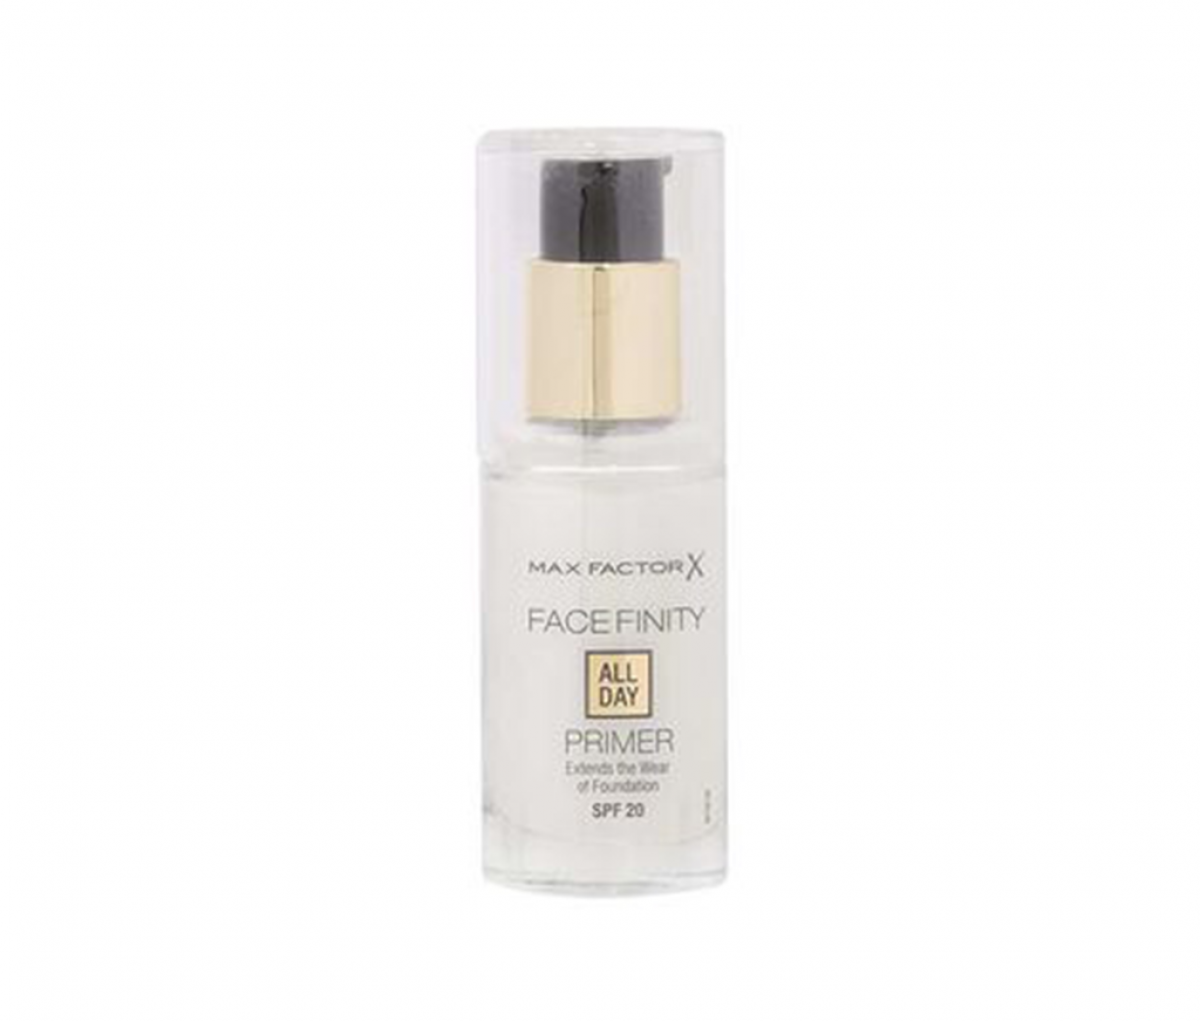 Max Factor Primer Face Finity All Day SPF20